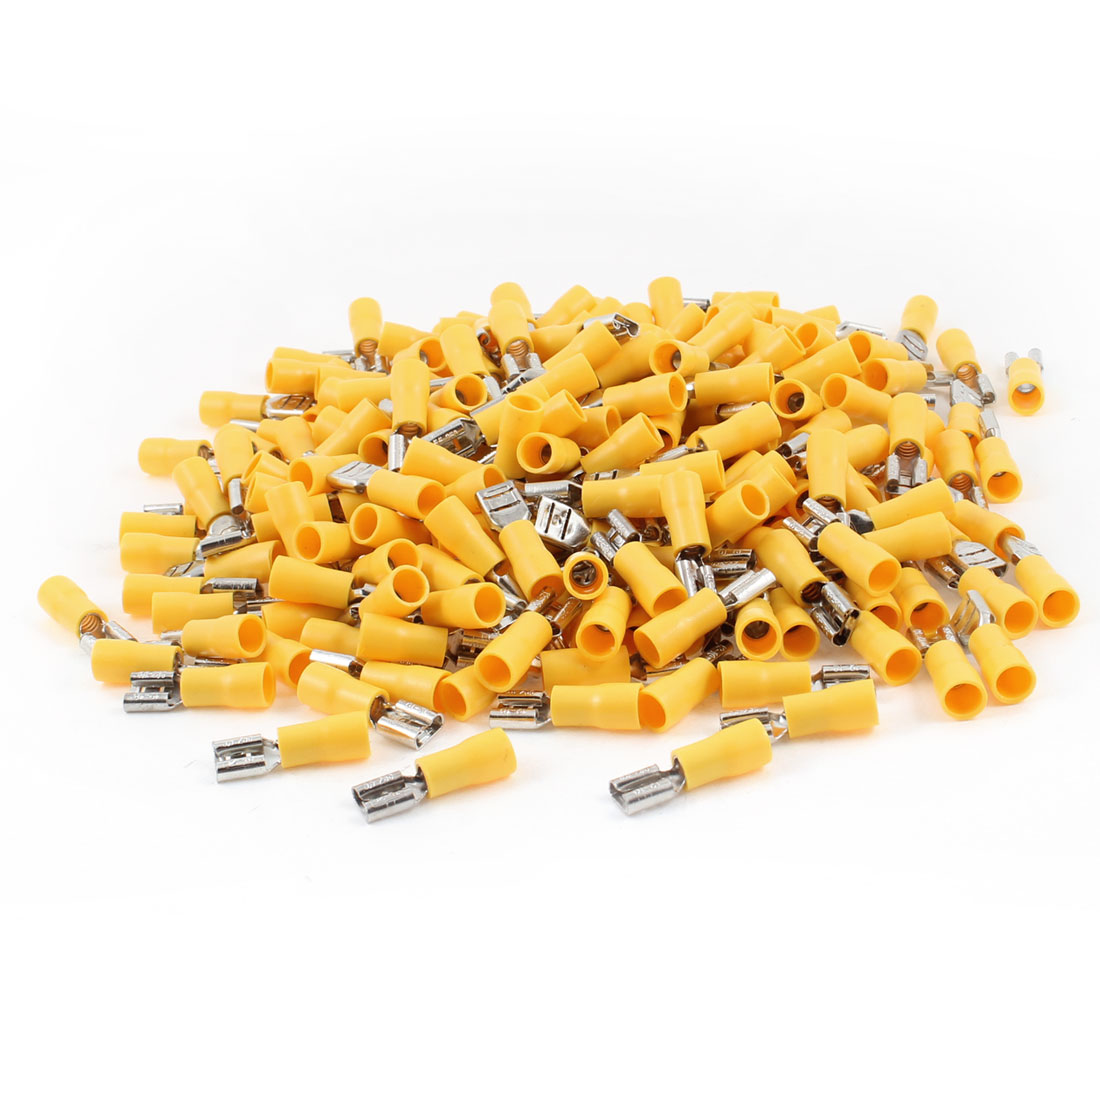 FDD5.5-250 Pre Insulated Spade Crimp Terminals Yellow 500pcs for AWG 12-10